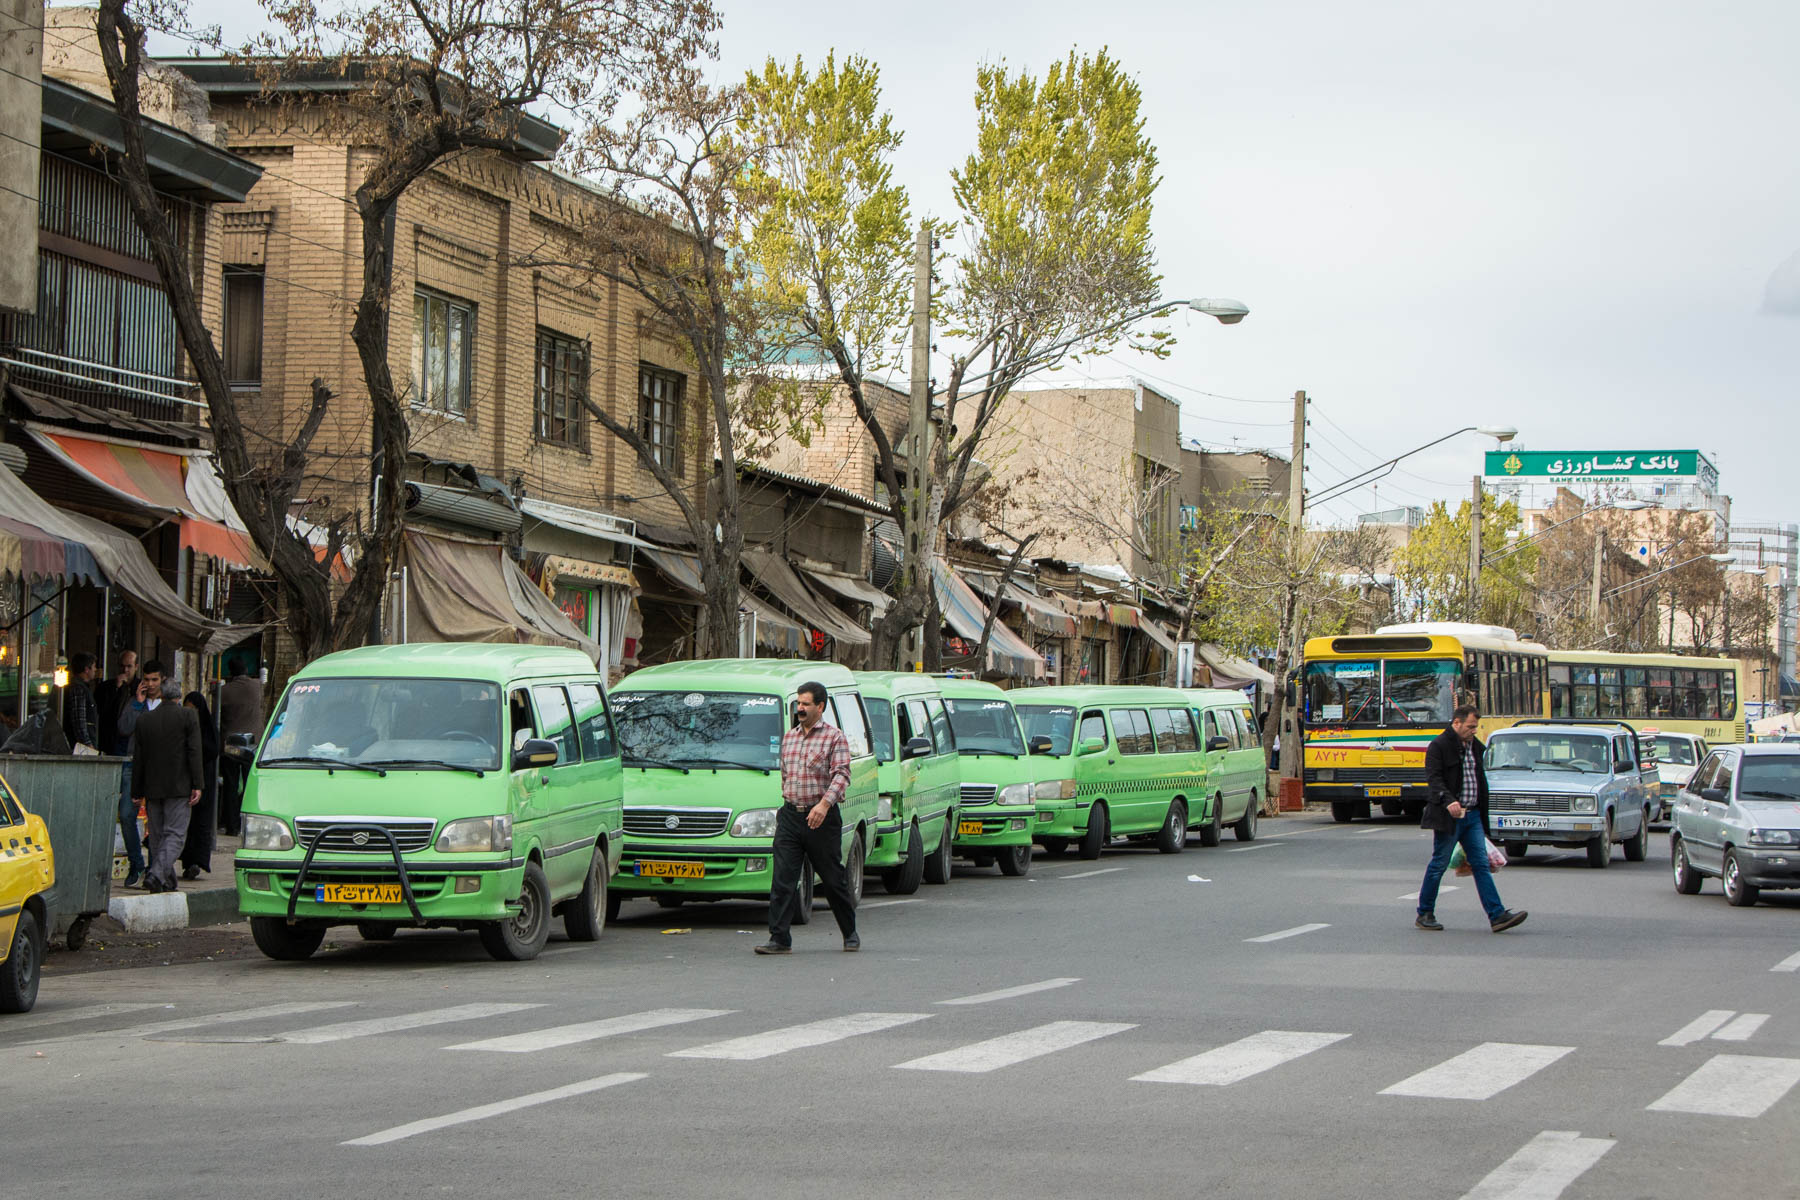 Shuttle taxis in Iran, in the city of Zanjan.